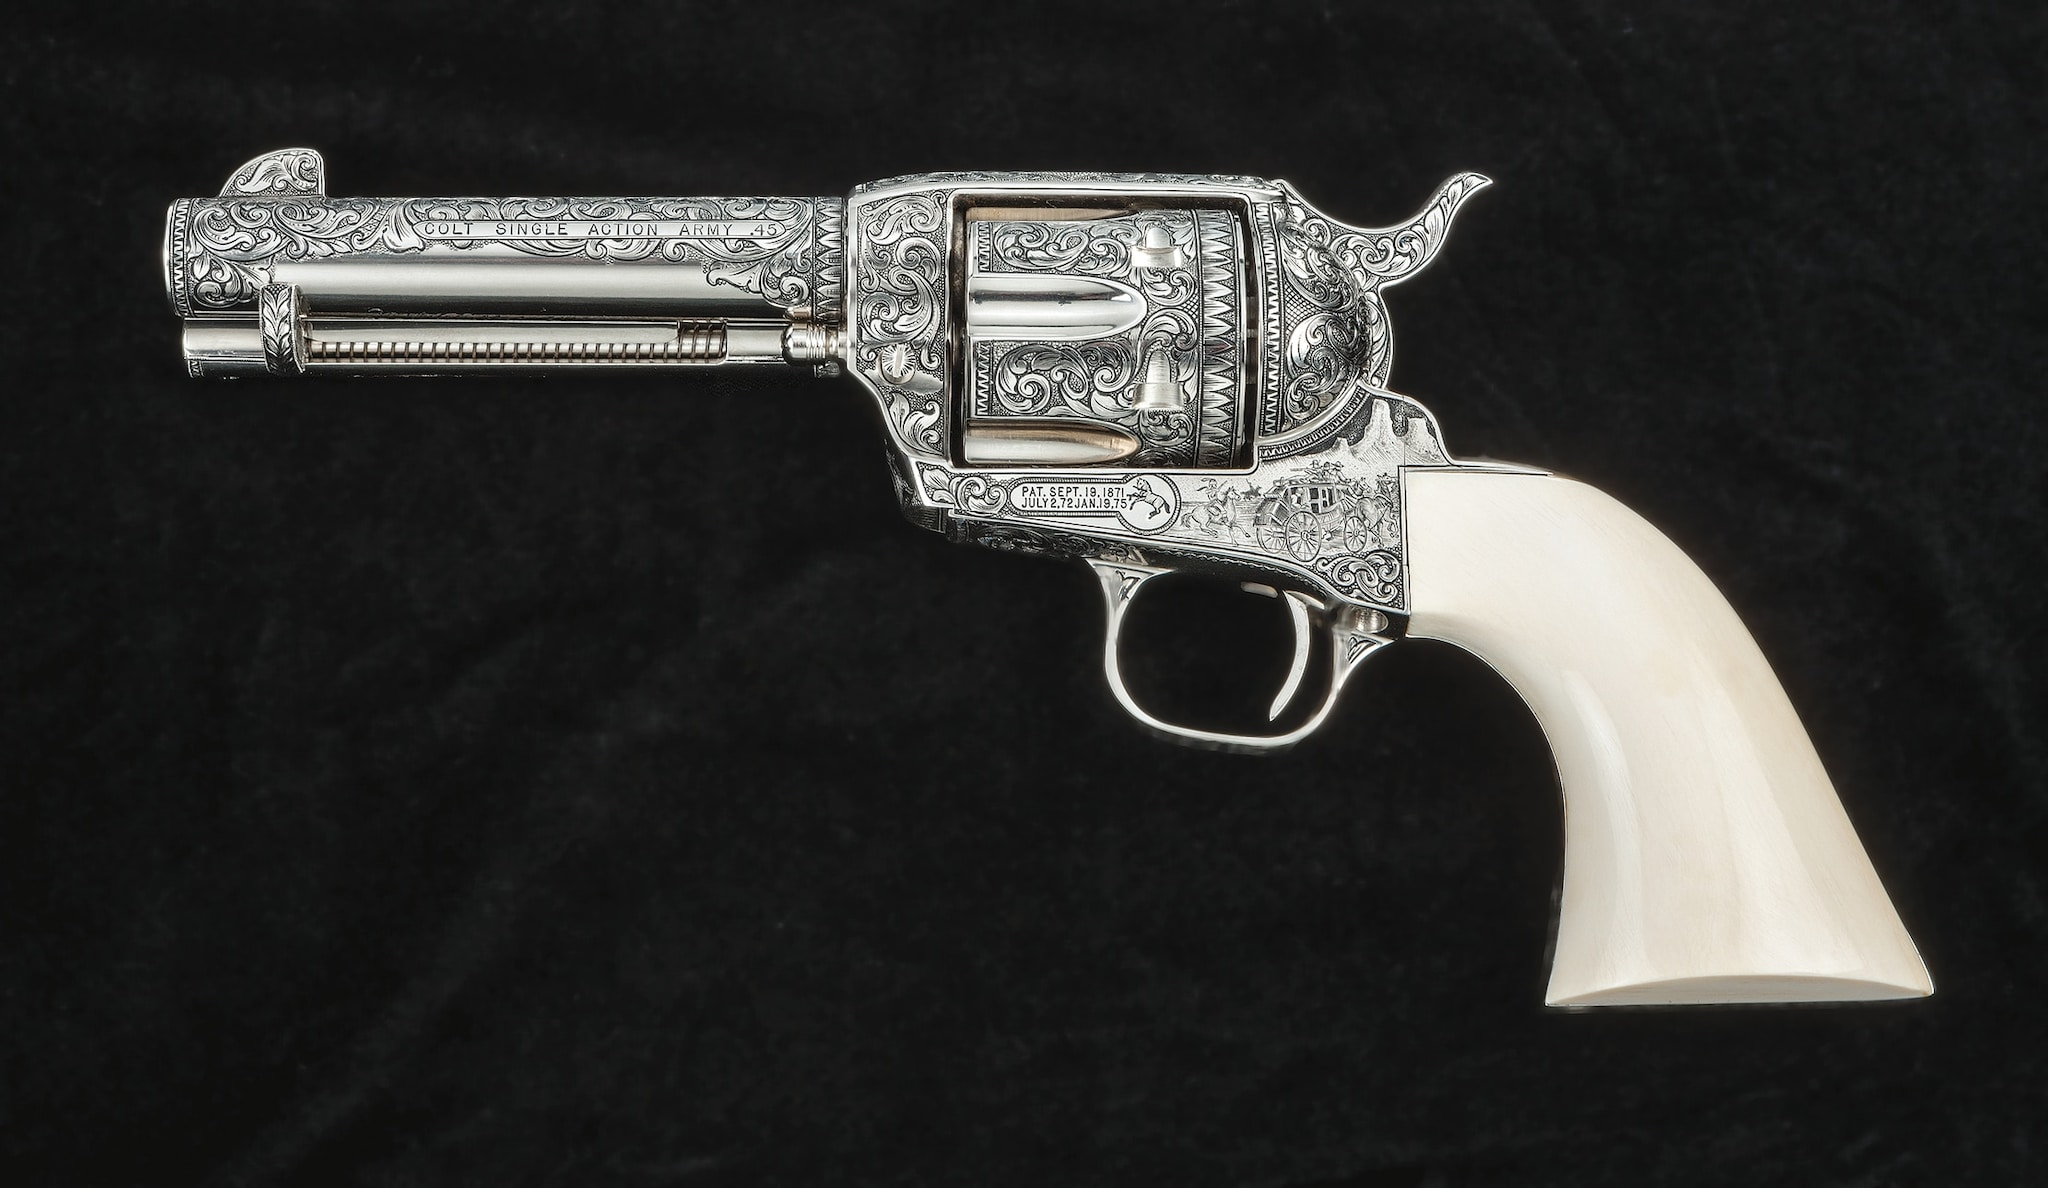 Stagecoach Colt Single Action Army .45 - theme dedicated to the 1936 Movie with John Wayne (Photo: Michael Dubber)